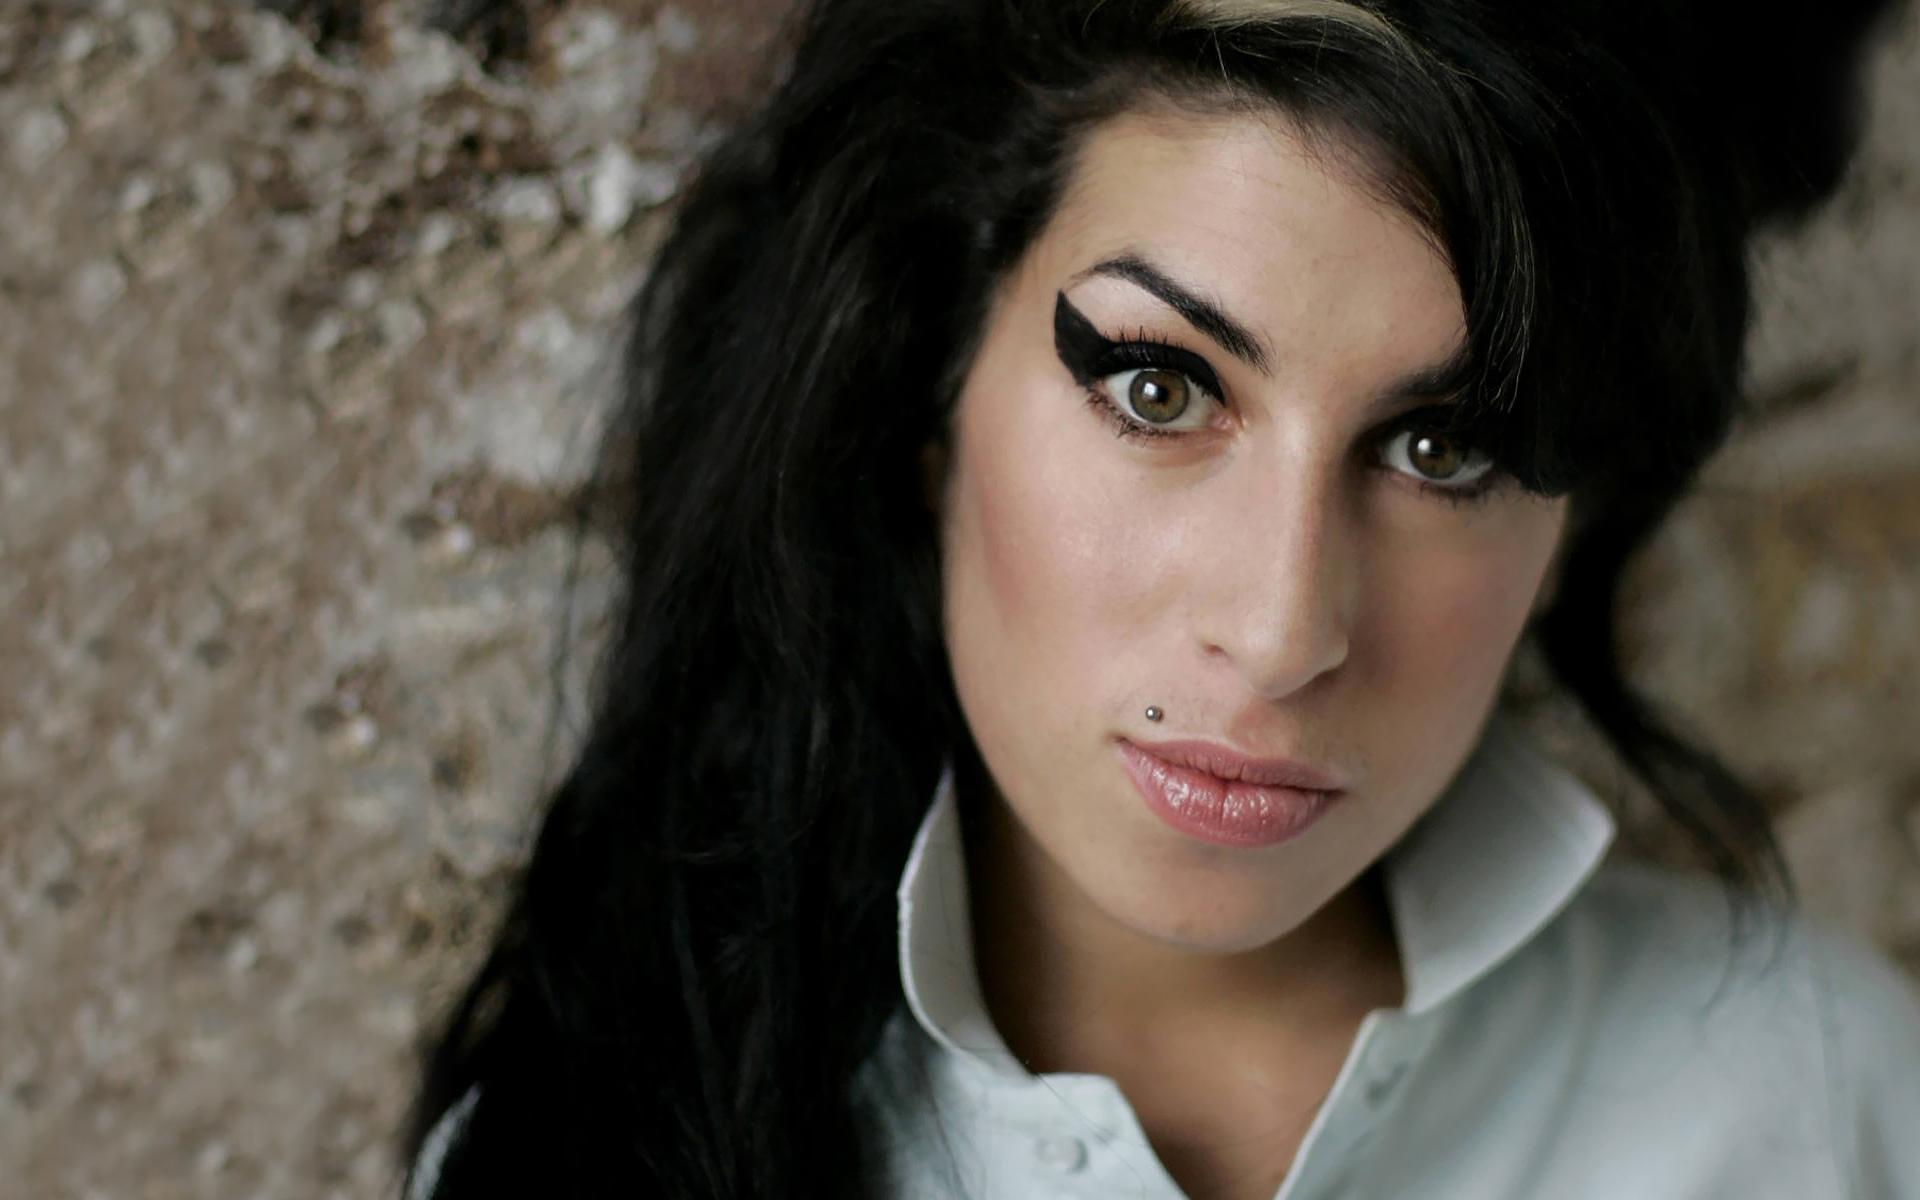 Amy Winehouse Wallpaper For Computer